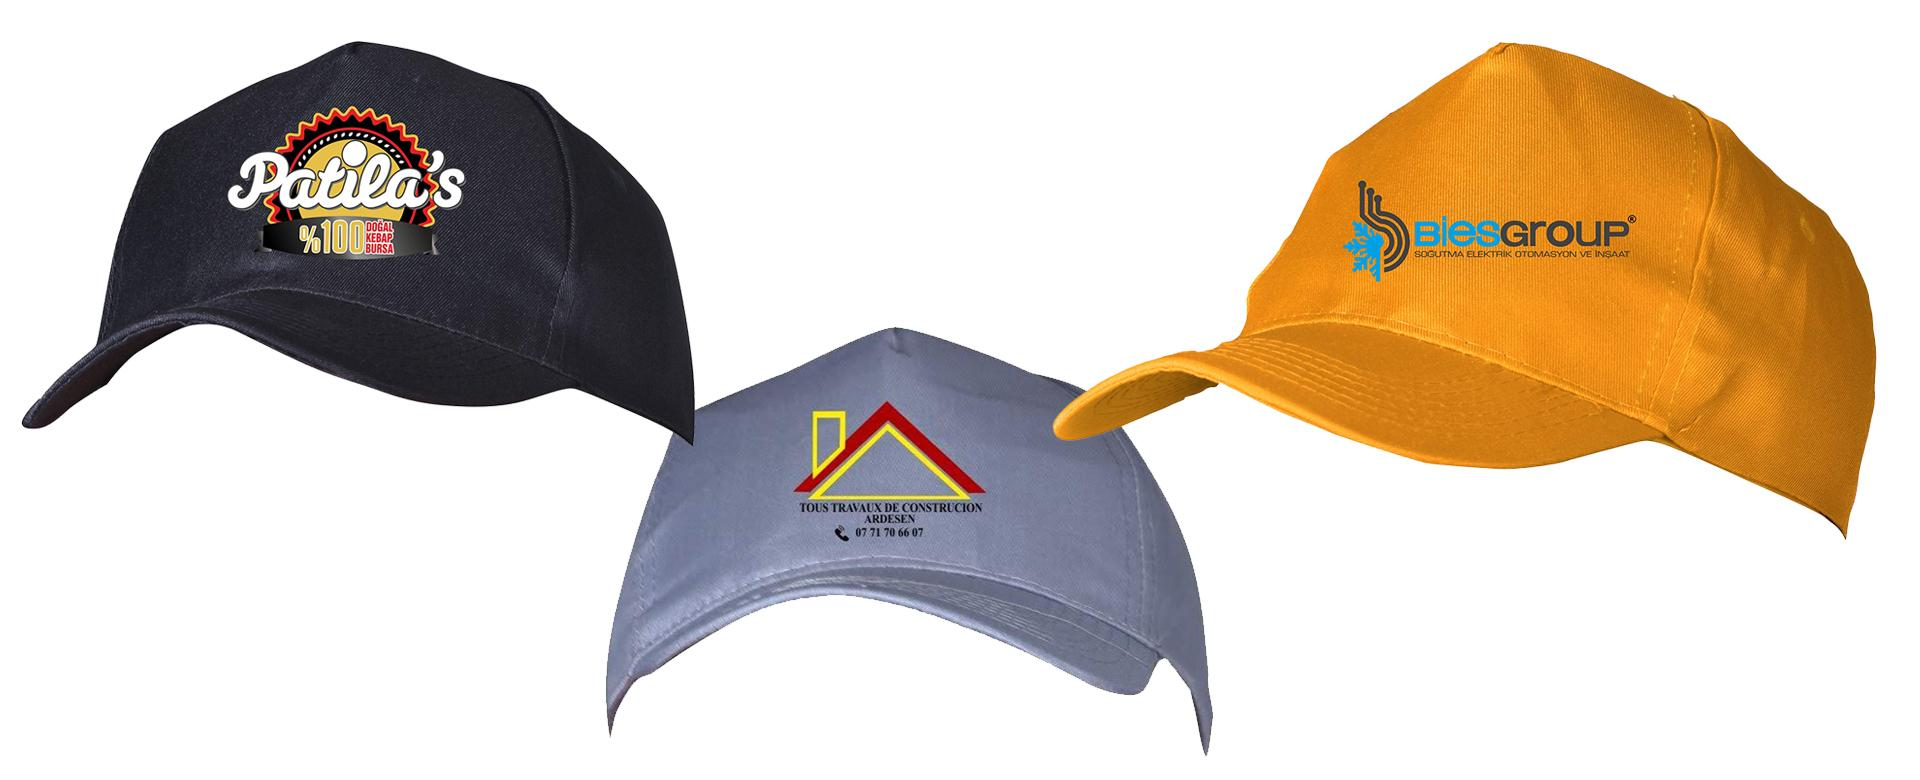 We print hats for you and send it worldwide